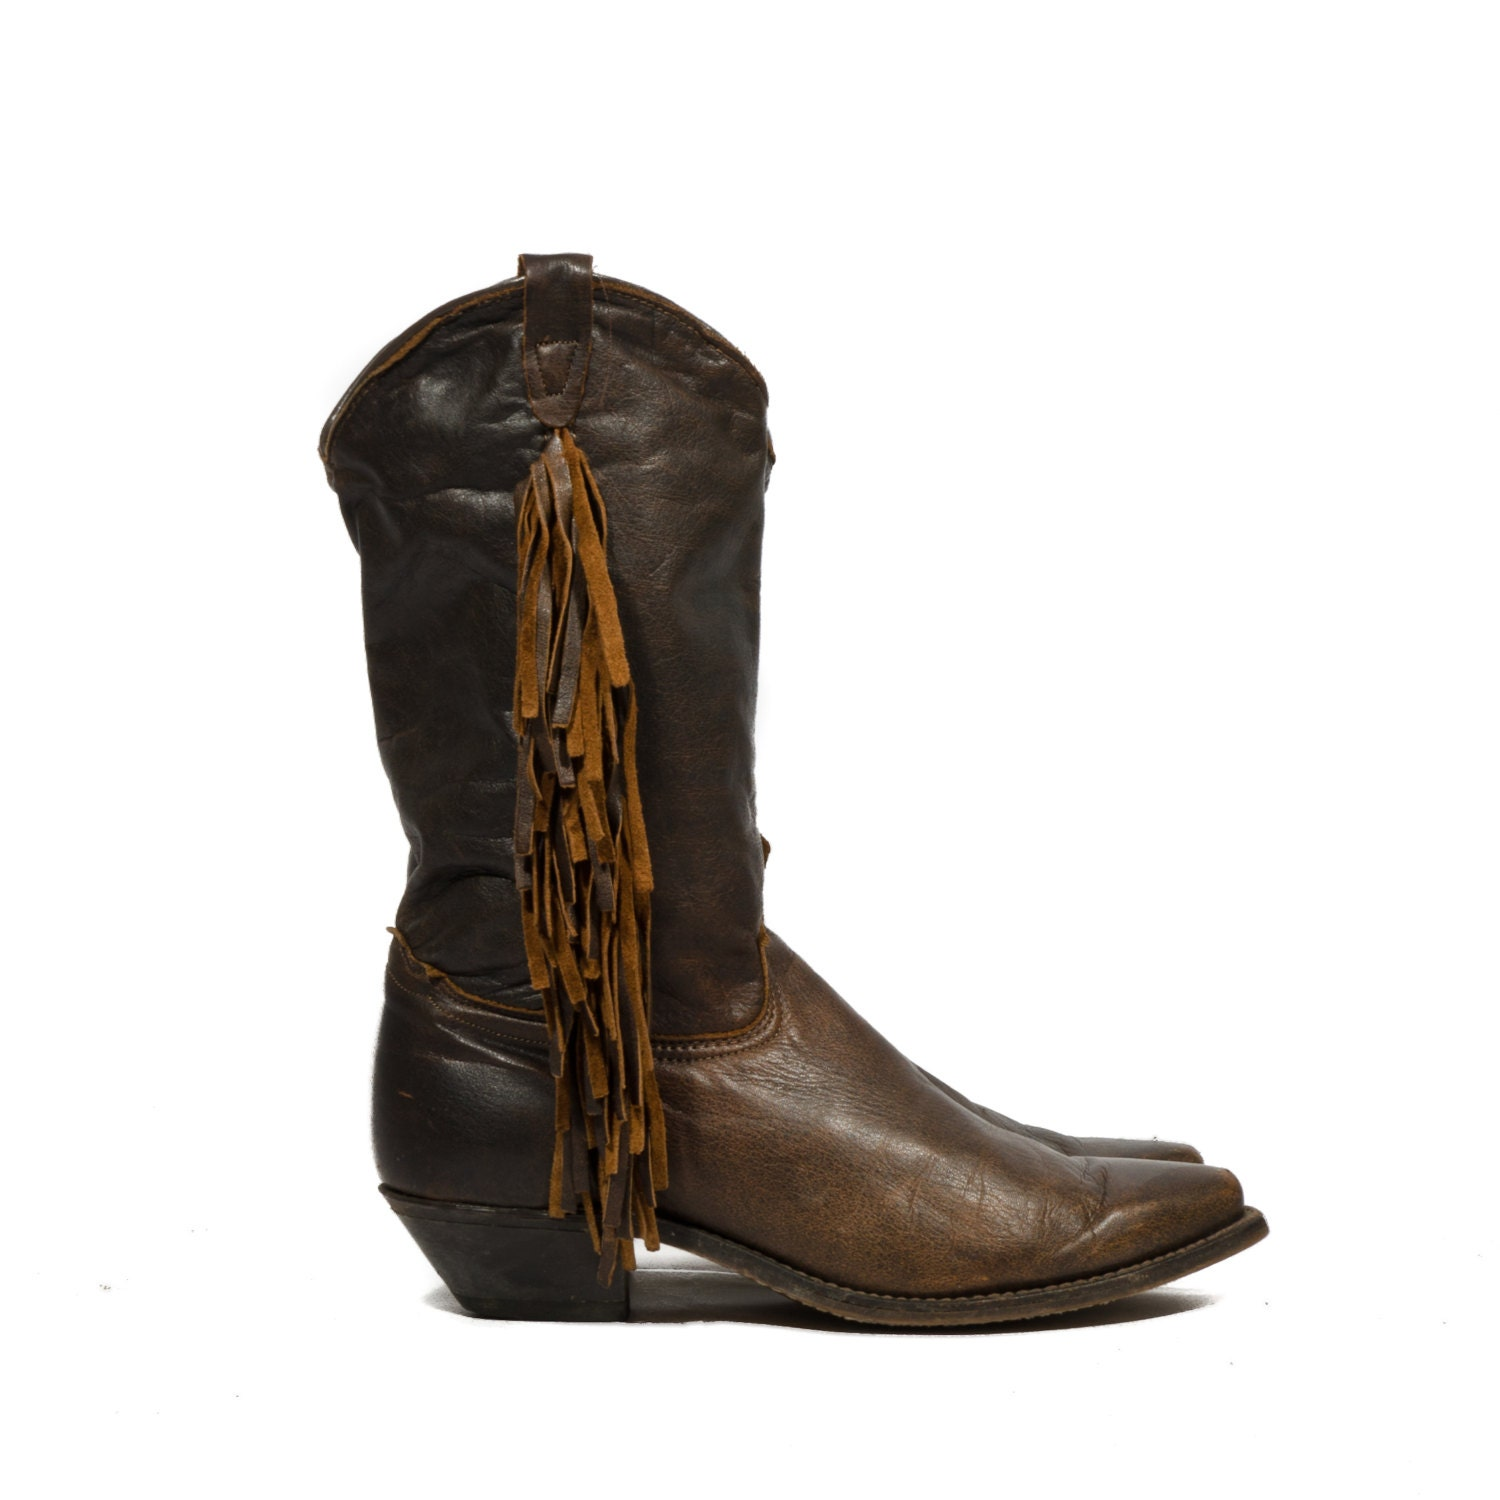 fringe cowboy boots brown leather by wildrabbitvintage